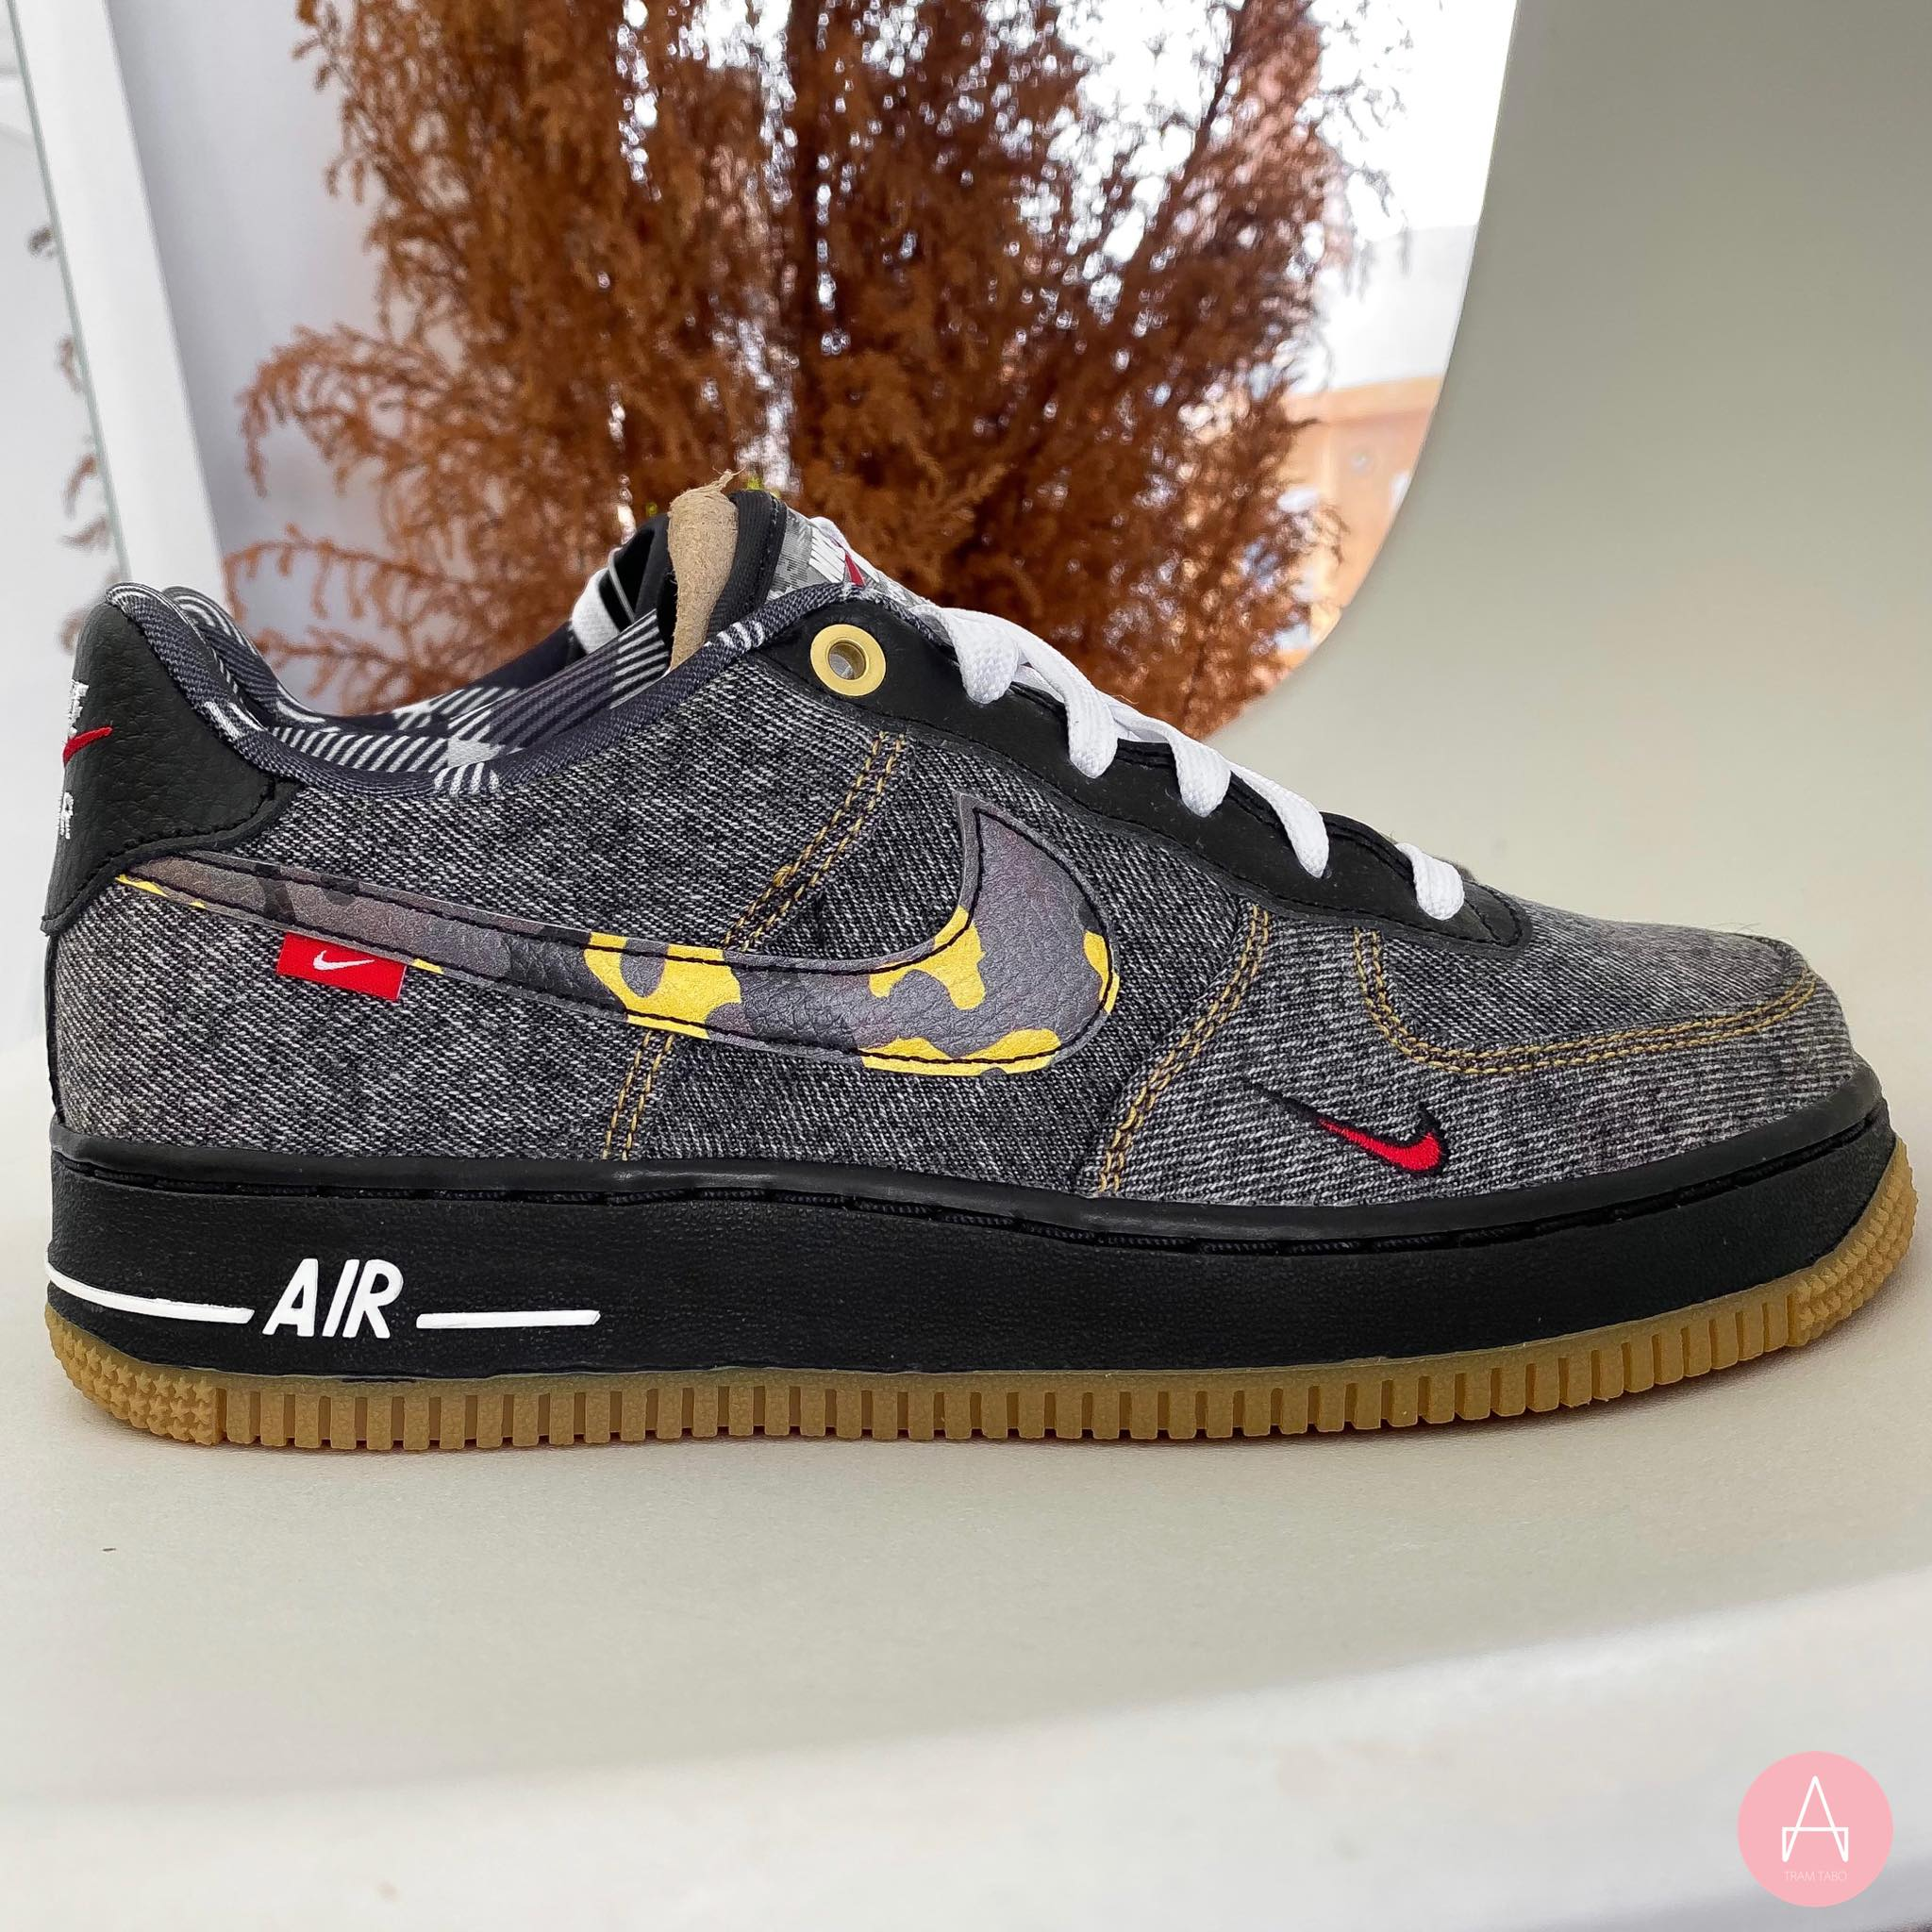 [DB1976-001] K NIKE AIR FORCE 1 LOW 'REMIX BLACK' BLACK/MULTI-COLOR